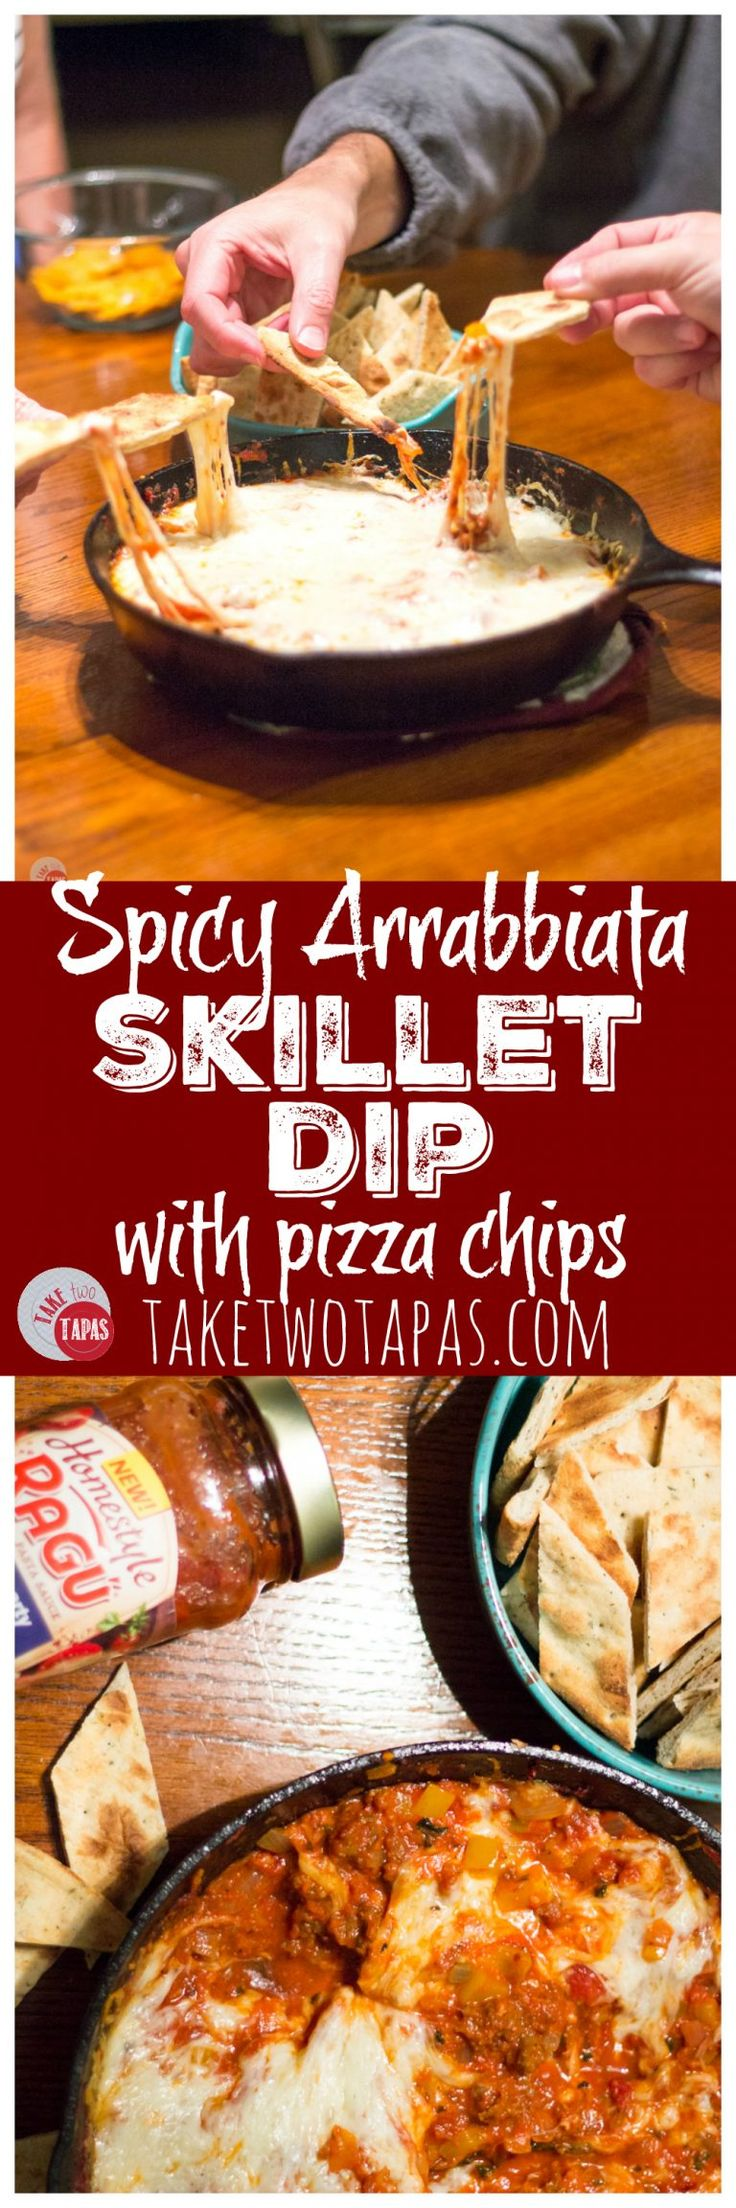 Asian pizza chips